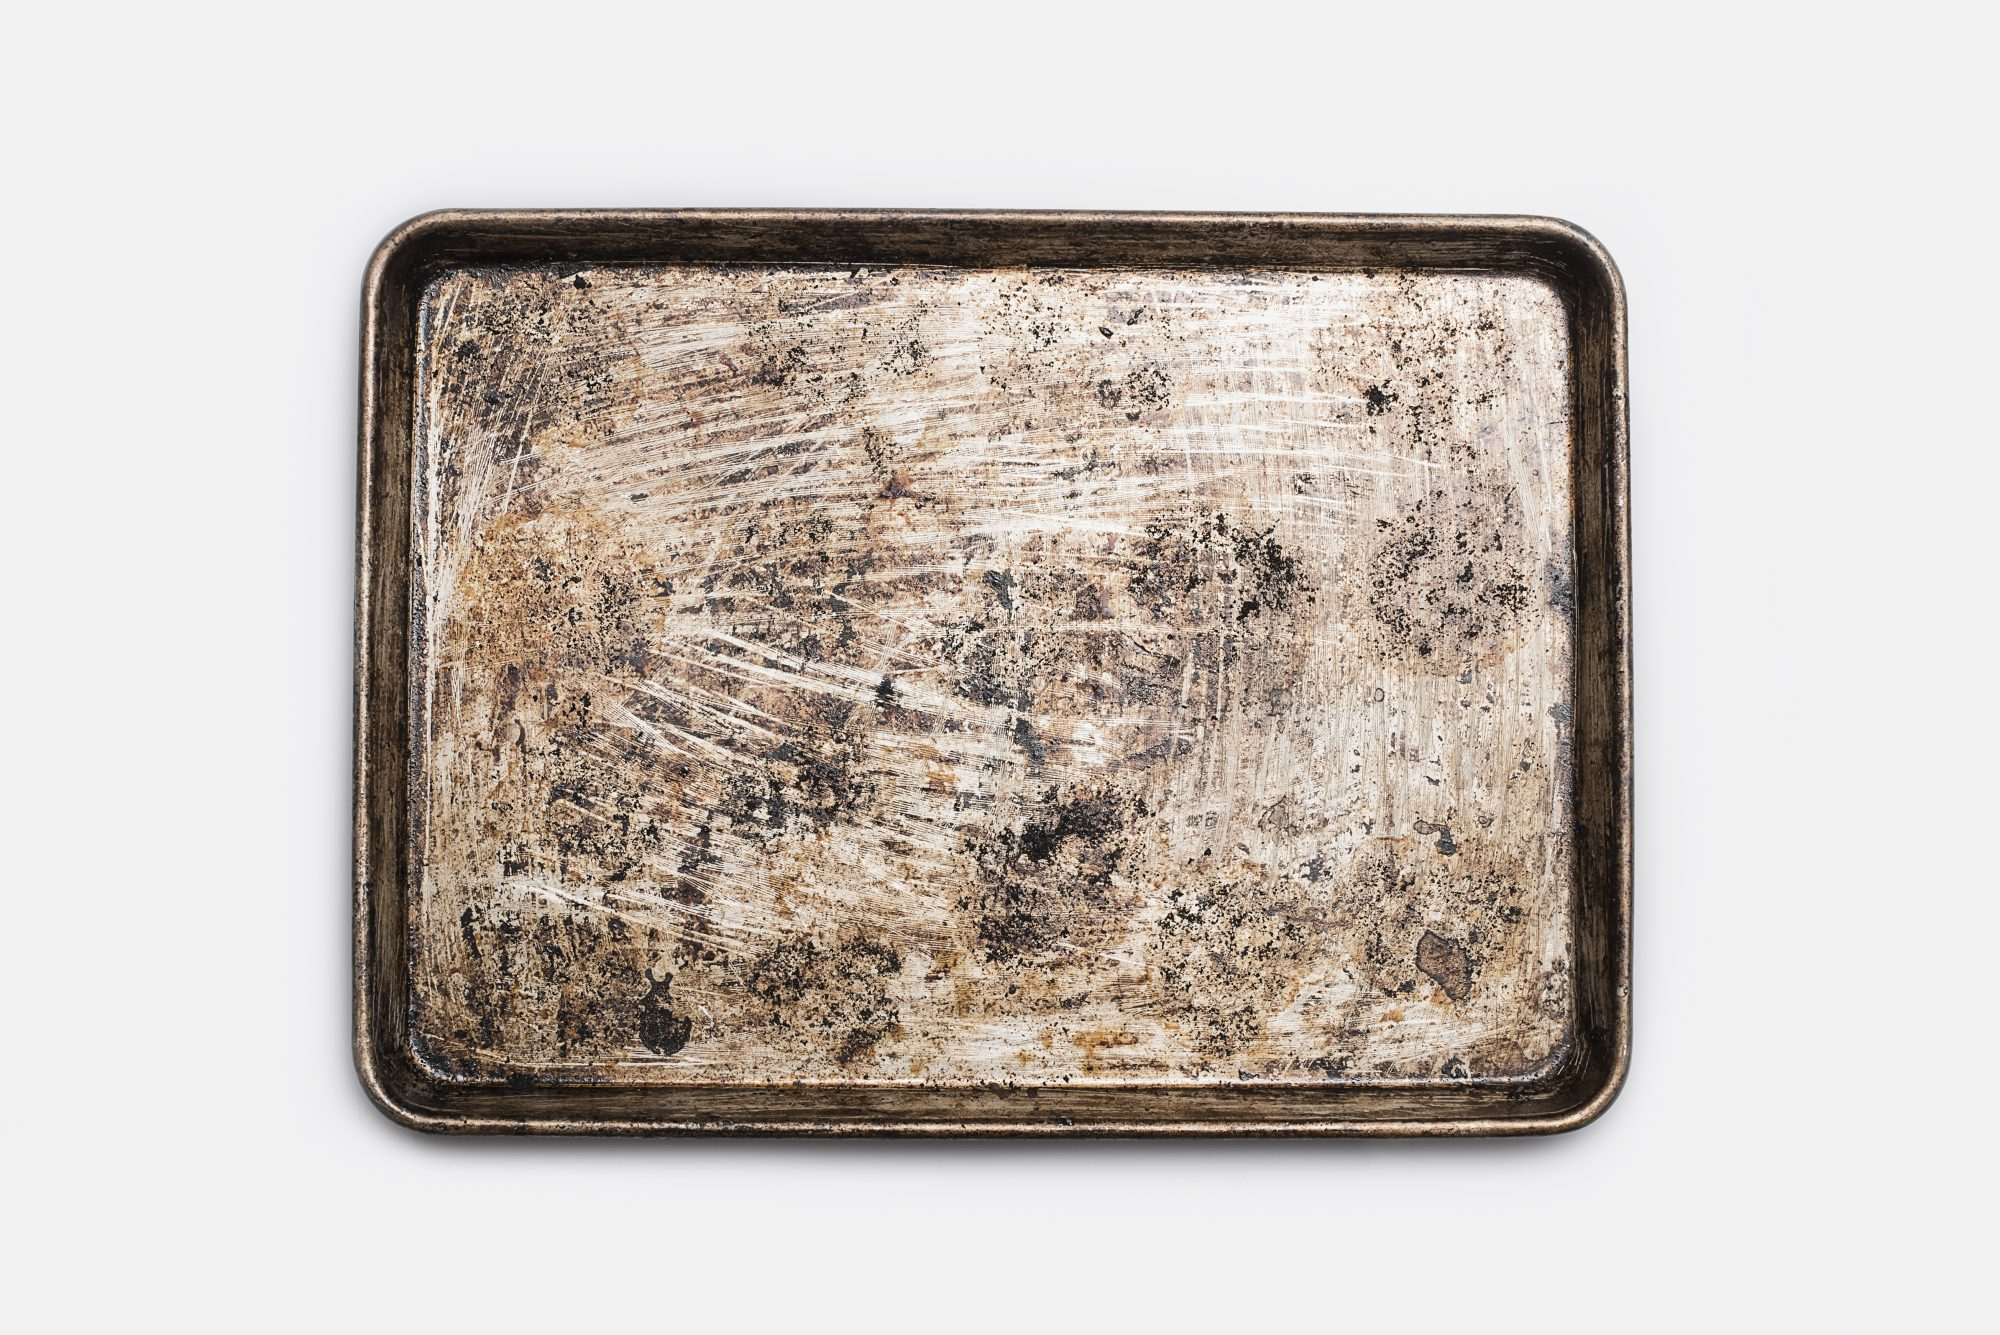 old-sheet-pan.jpg